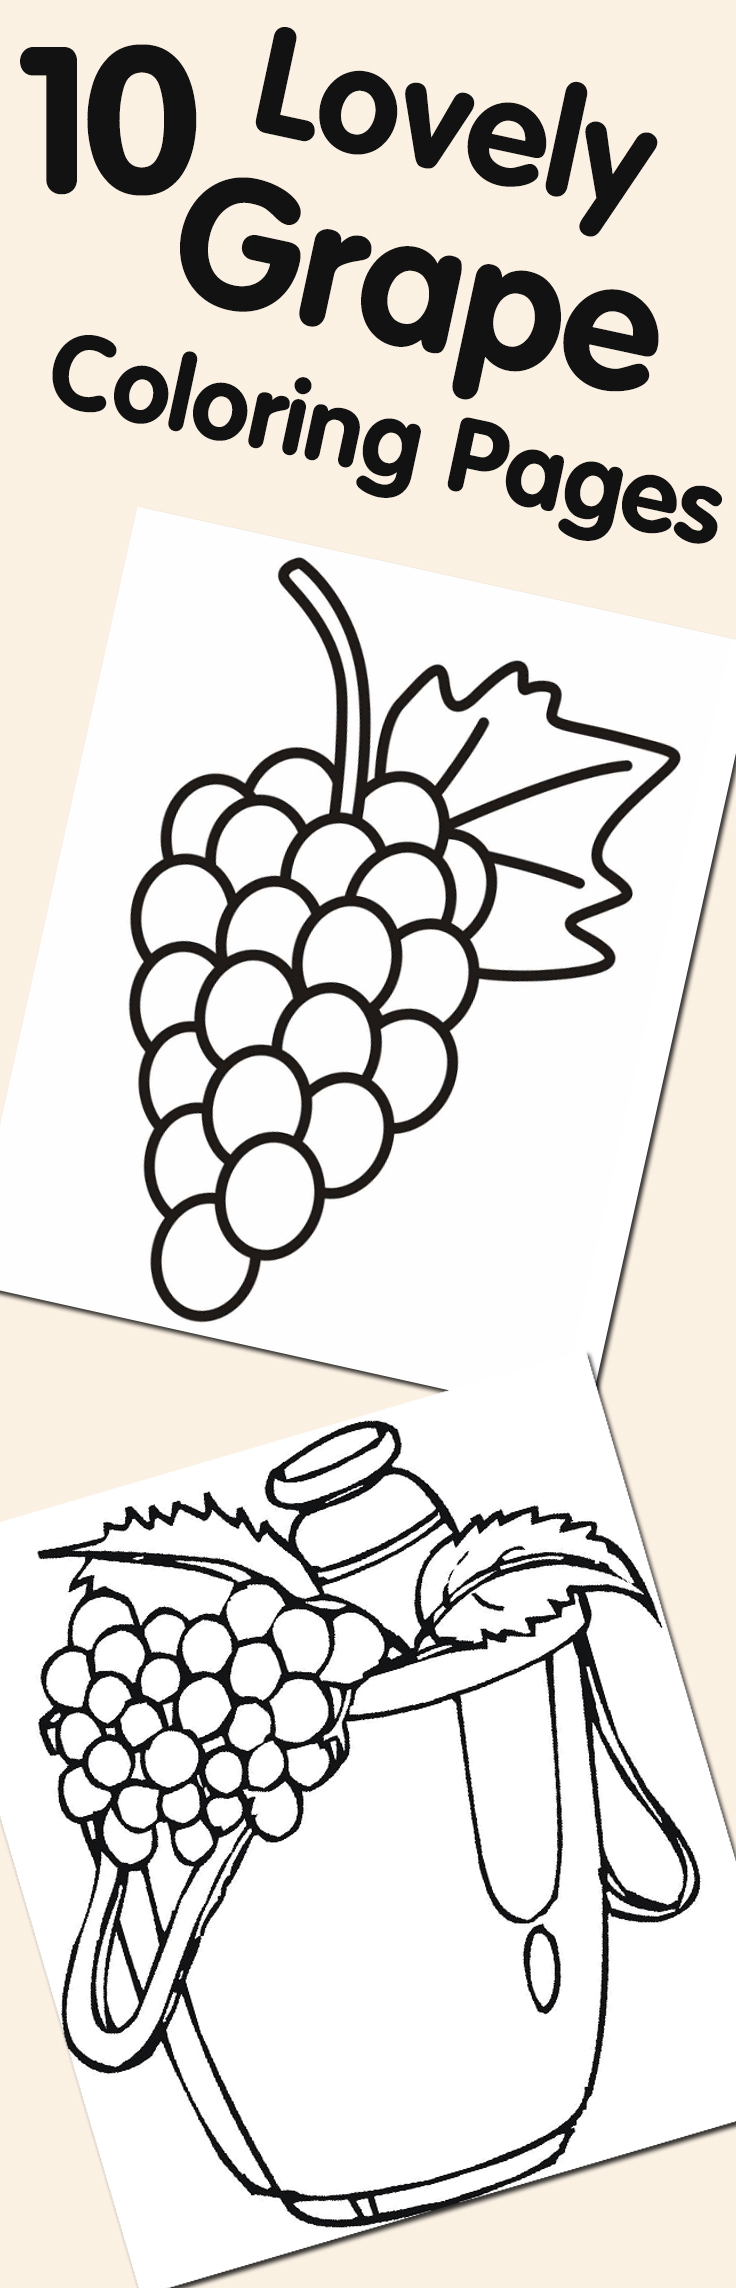 Flower vines coloring pages - Flower Vines Coloring Pages 58